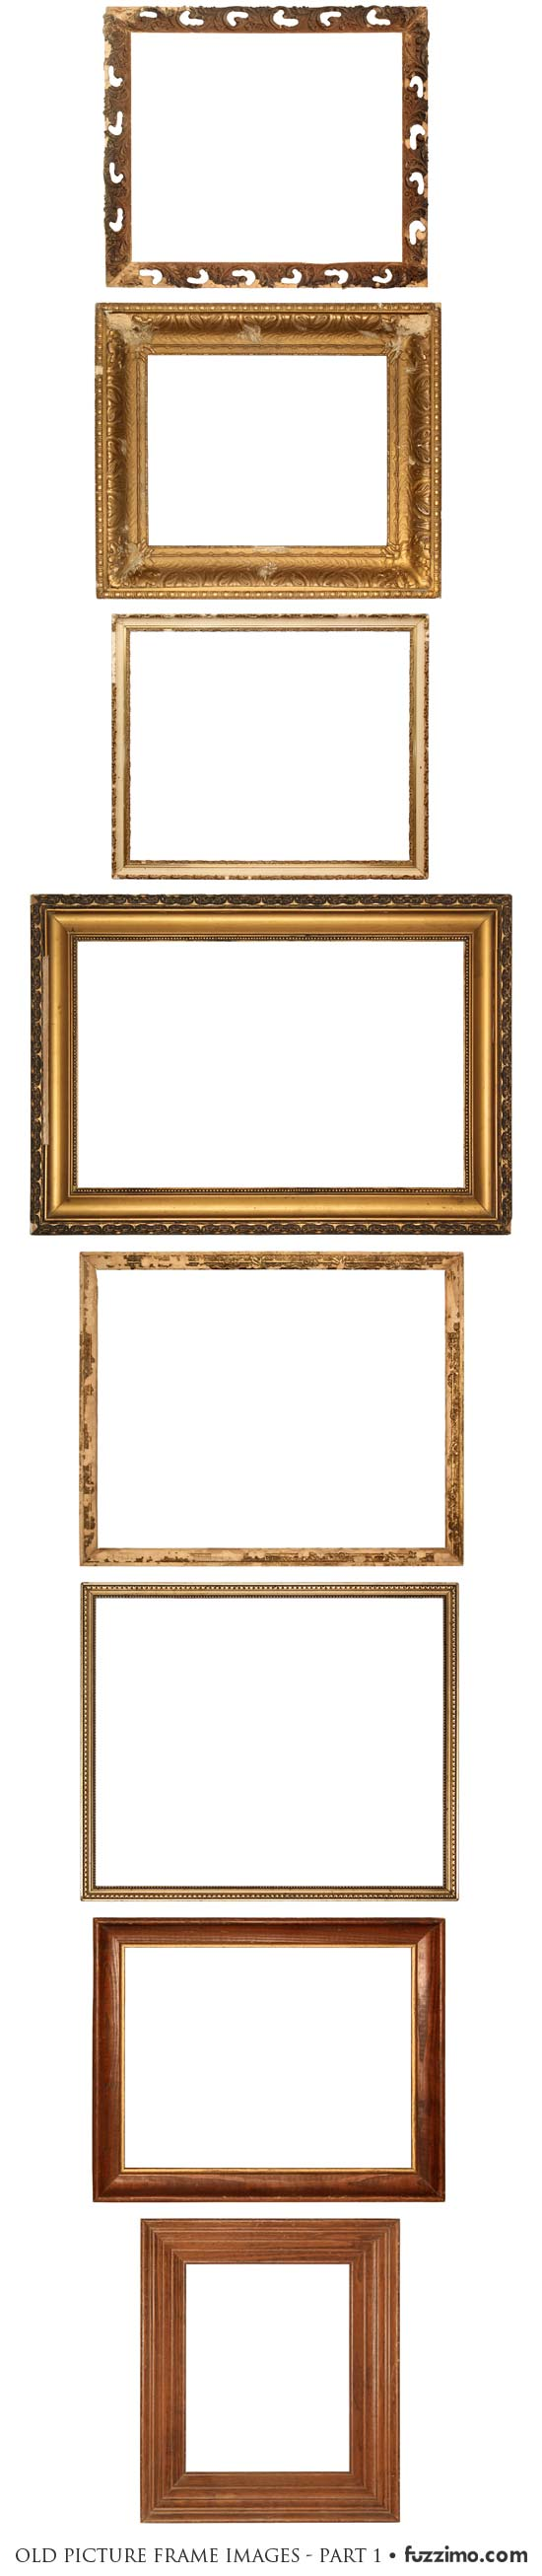 fzm-Antique-Old-Picture-Frame-Images-(1)-02b